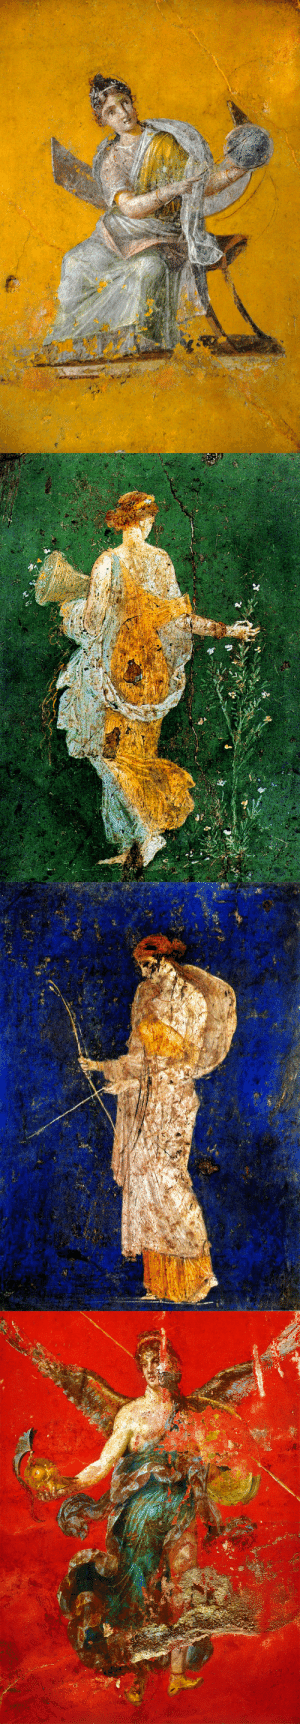 avvoltoio: Roman Frescoes + Solid Colors 1) The Muse Urania from the House of Julia Felix, Pompeii2) Flora from the Villa Arianna, Stabiae3) Diana the Huntress from the Villa Arianna, Stabiae4) Winged Victory from the Inn of the Sulpicii, Murecine   : avvoltoio: Roman Frescoes + Solid Colors 1) The Muse Urania from the House of Julia Felix, Pompeii2) Flora from the Villa Arianna, Stabiae3) Diana the Huntress from the Villa Arianna, Stabiae4) Winged Victory from the Inn of the Sulpicii, Murecine